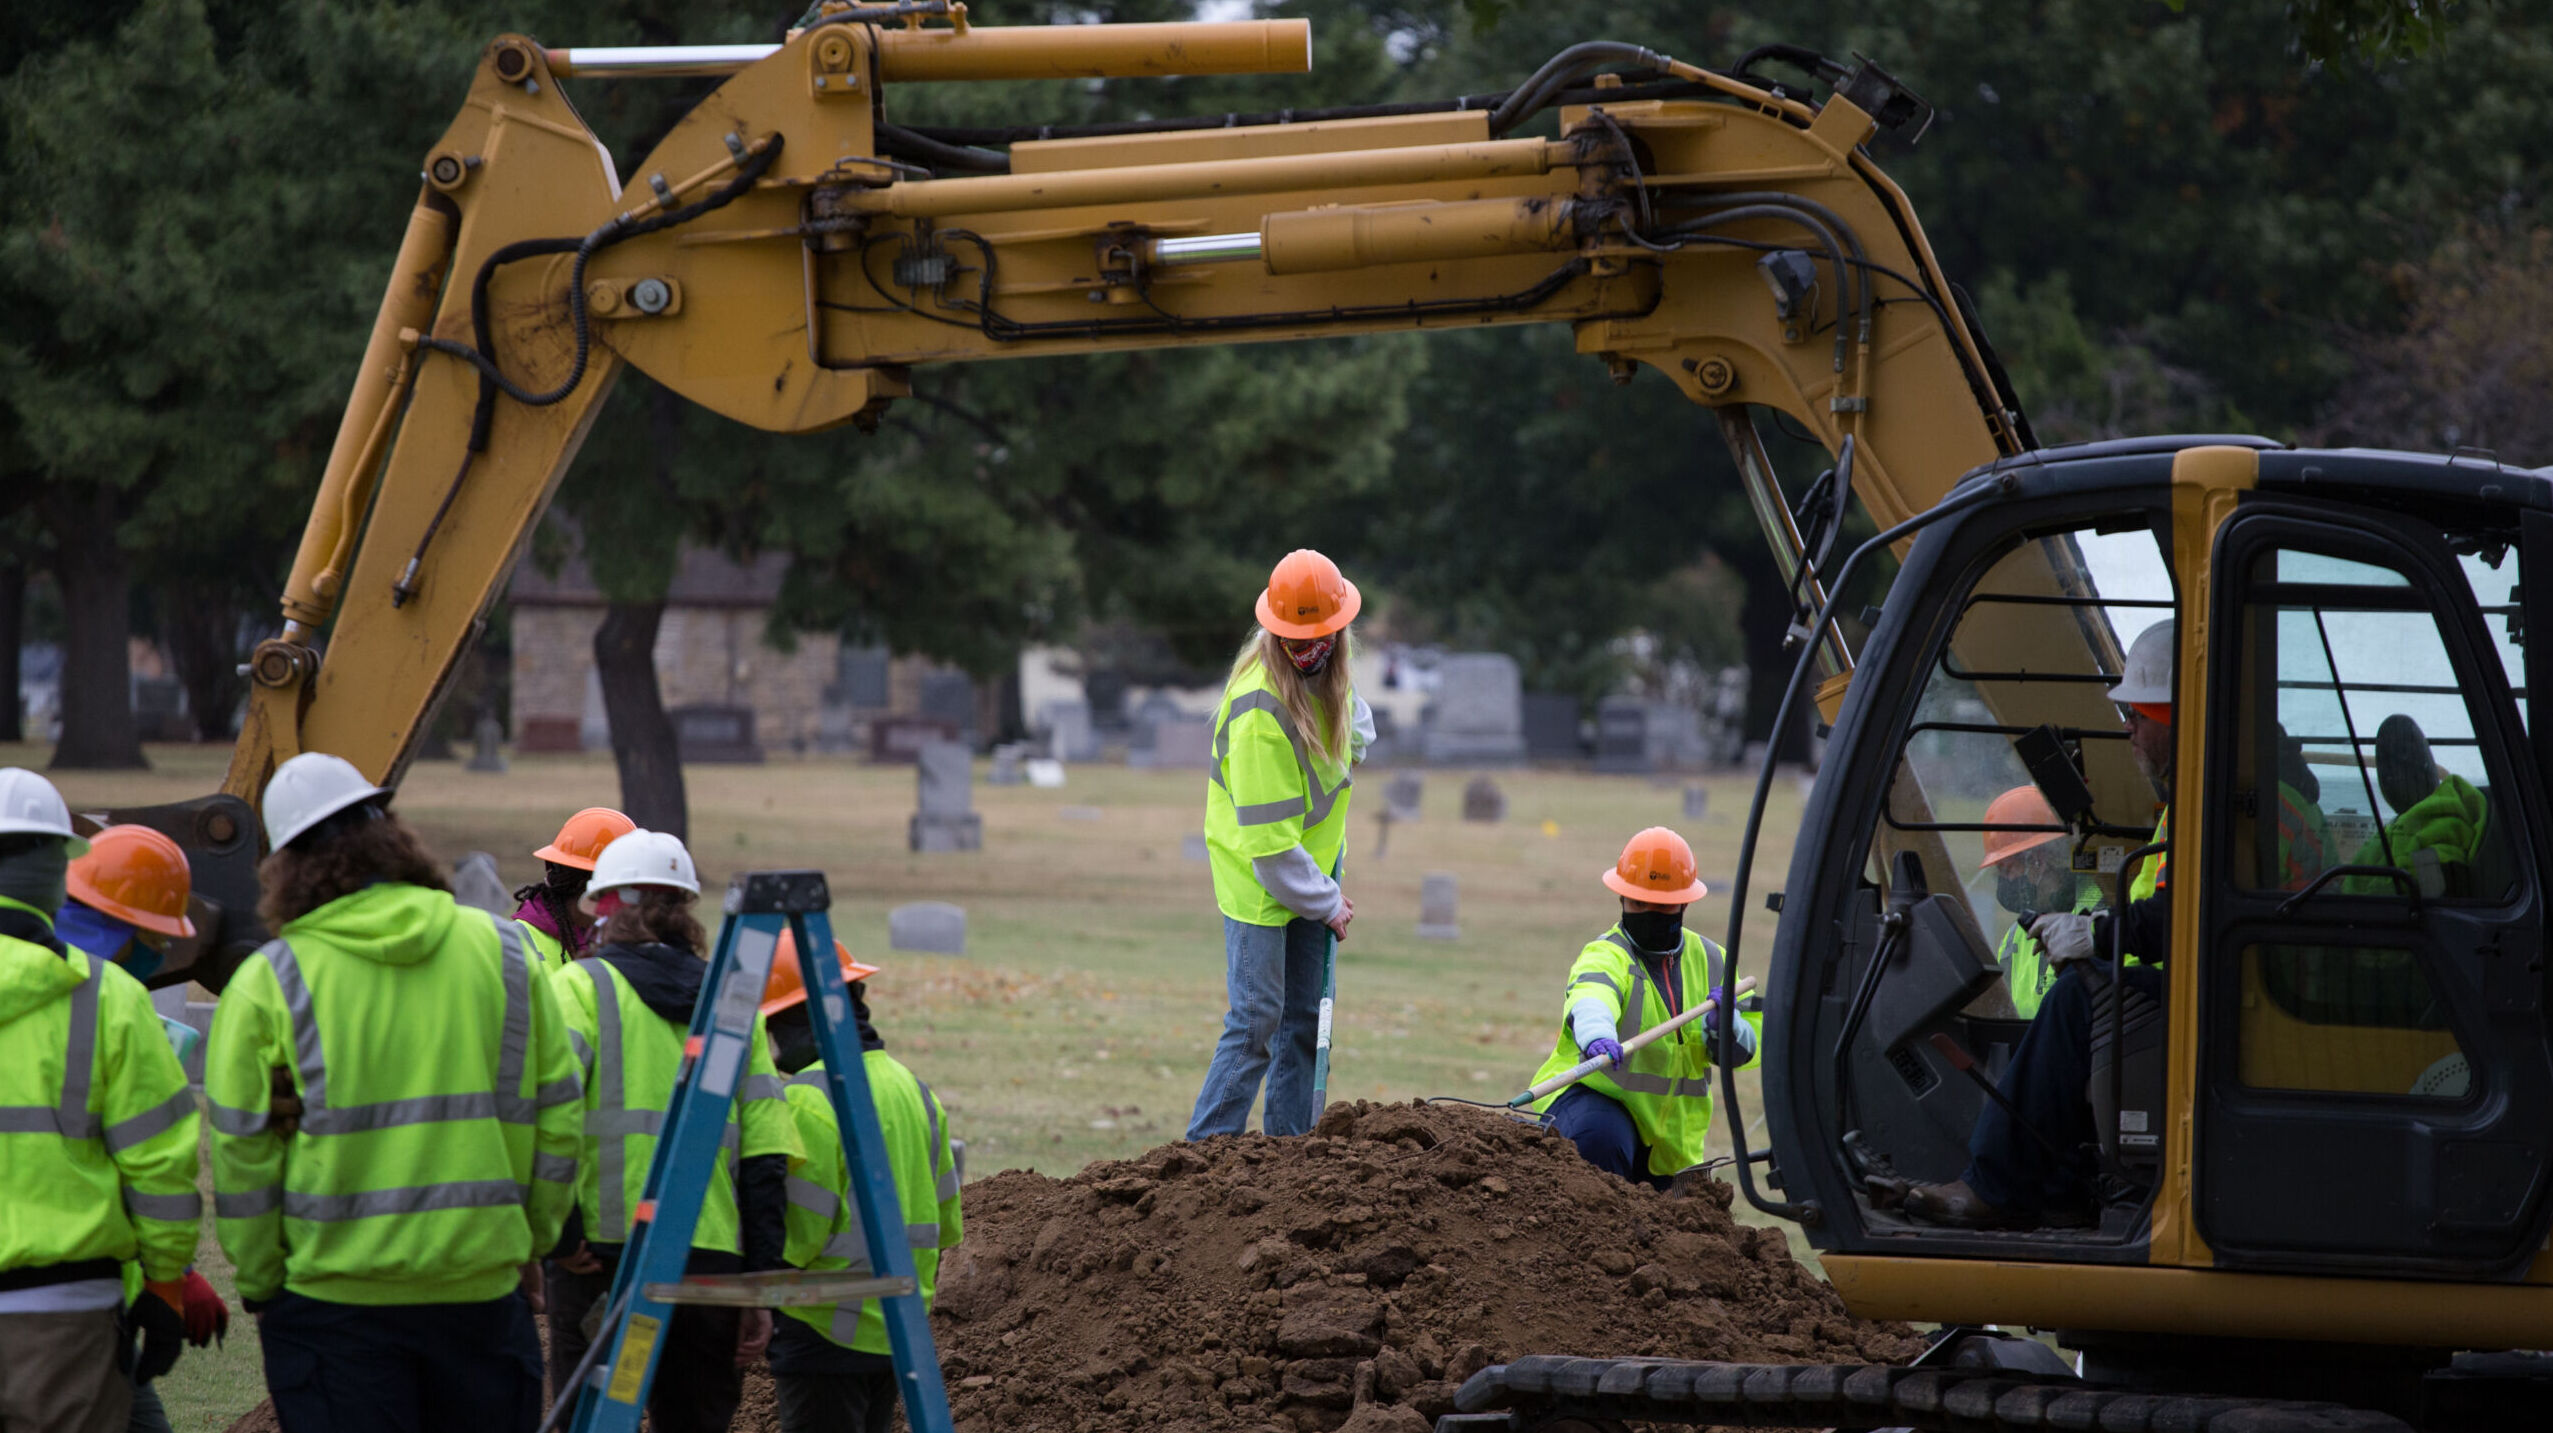 People in flourescent yellow vests and hard hats stand around a high mound of freshly dug dirt near a cemetery. A bulldozer is partially in view.